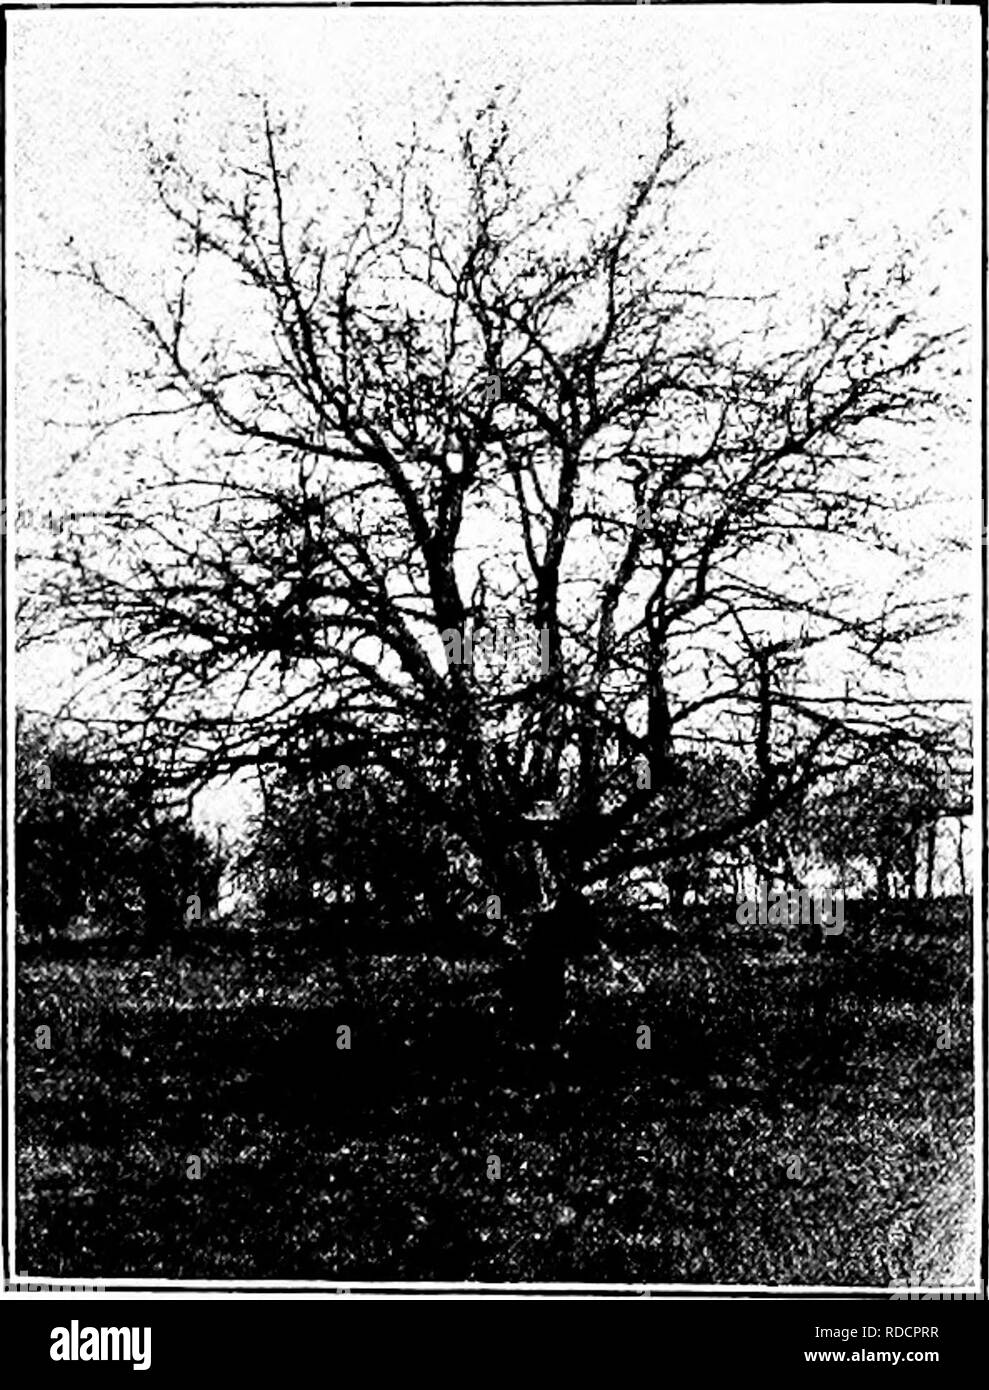 . Soils and plant life as related to agriculture . Agriculture; Soils; Plants. FRUIT GROWING 301 growth. From the buds, which may be readily found on these arms, are to come the branches that will bear the fruit. The grape should be pruned in the late winter, when all the wood should be cut away save the old stems and four 7iew branches, less than one year old, which will form the arms of the two T's. Raspberries and Blackberries. — Soon after these berries have been picked, the canes which bore them die, and beside them, growing up from the same root, are found new canes. The old canes should - Stock Image